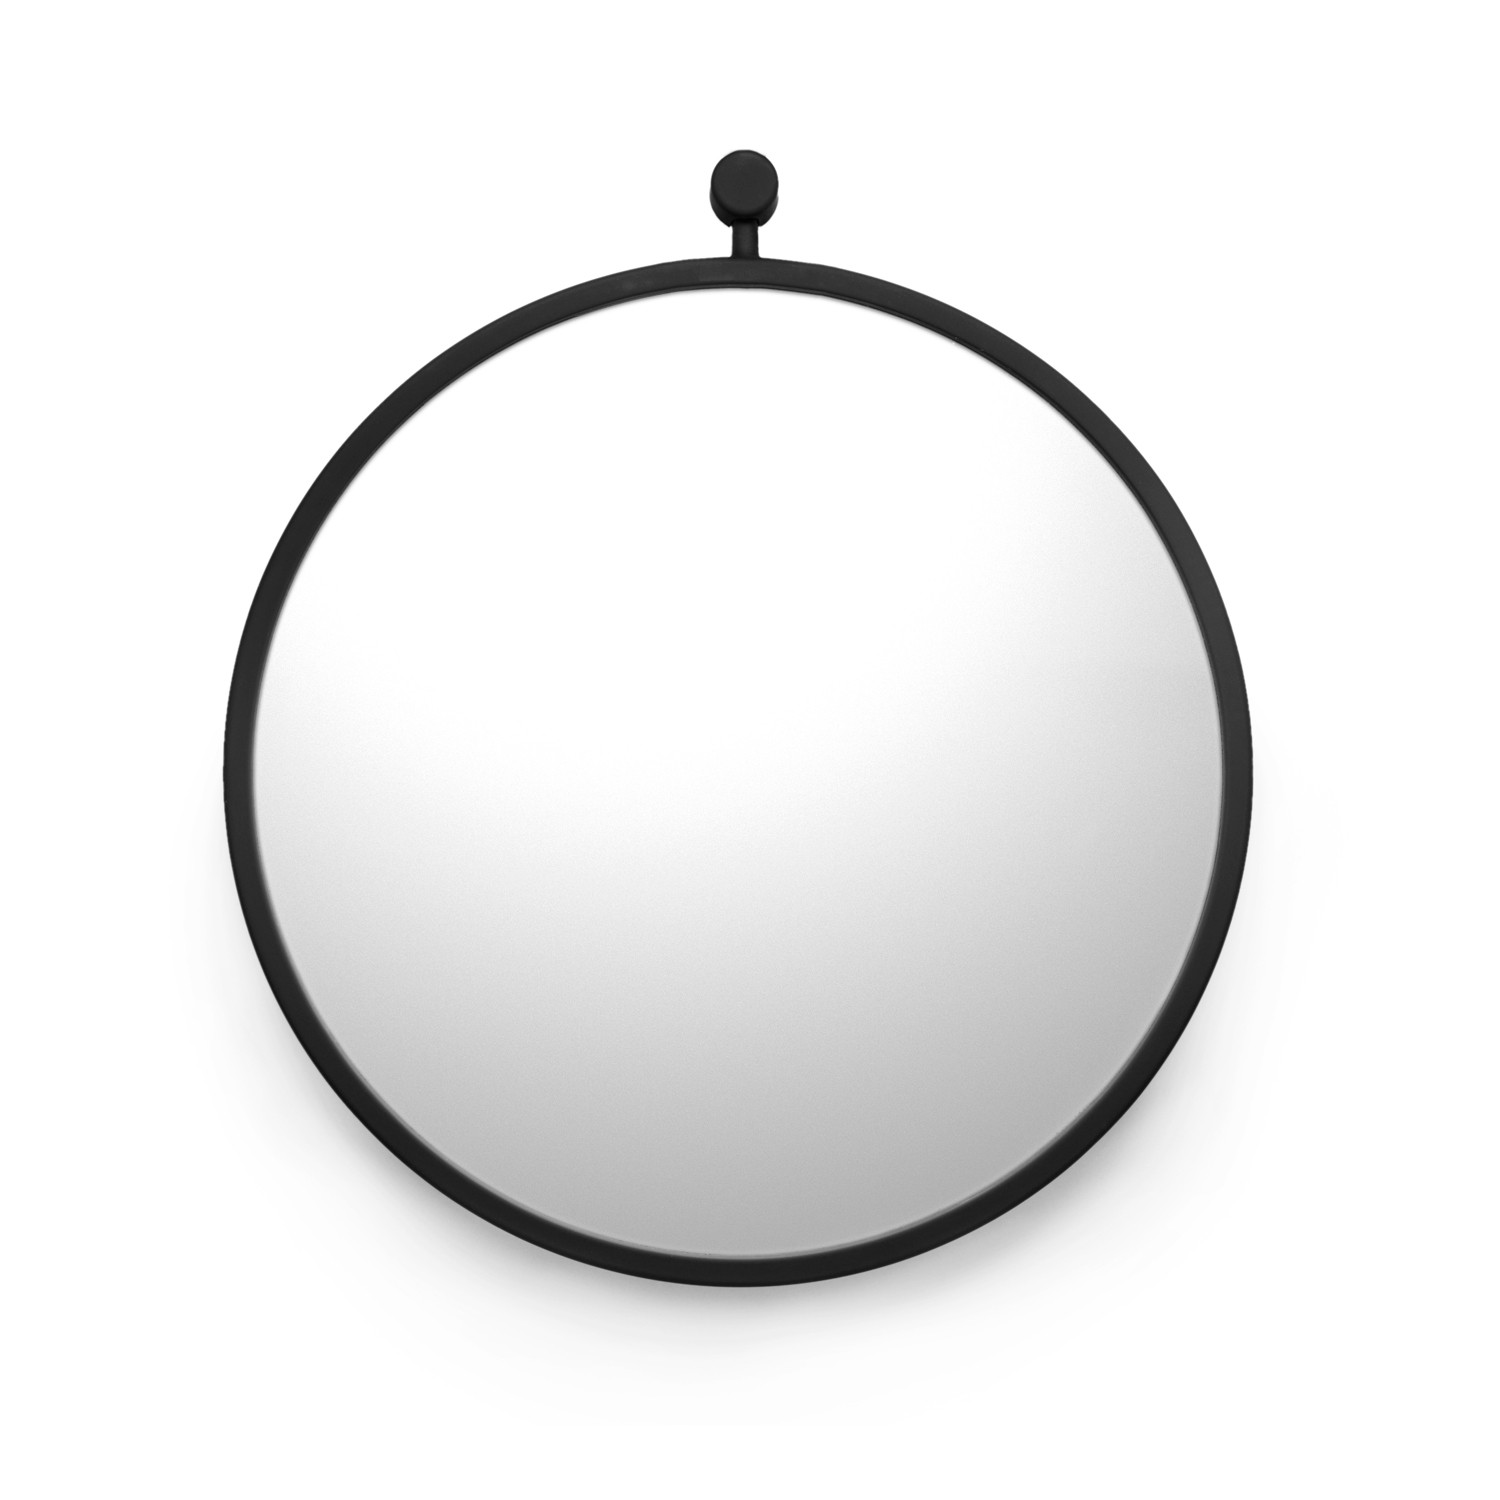 Hanging mirror matte black small kontext r touch for Small hanging mirror